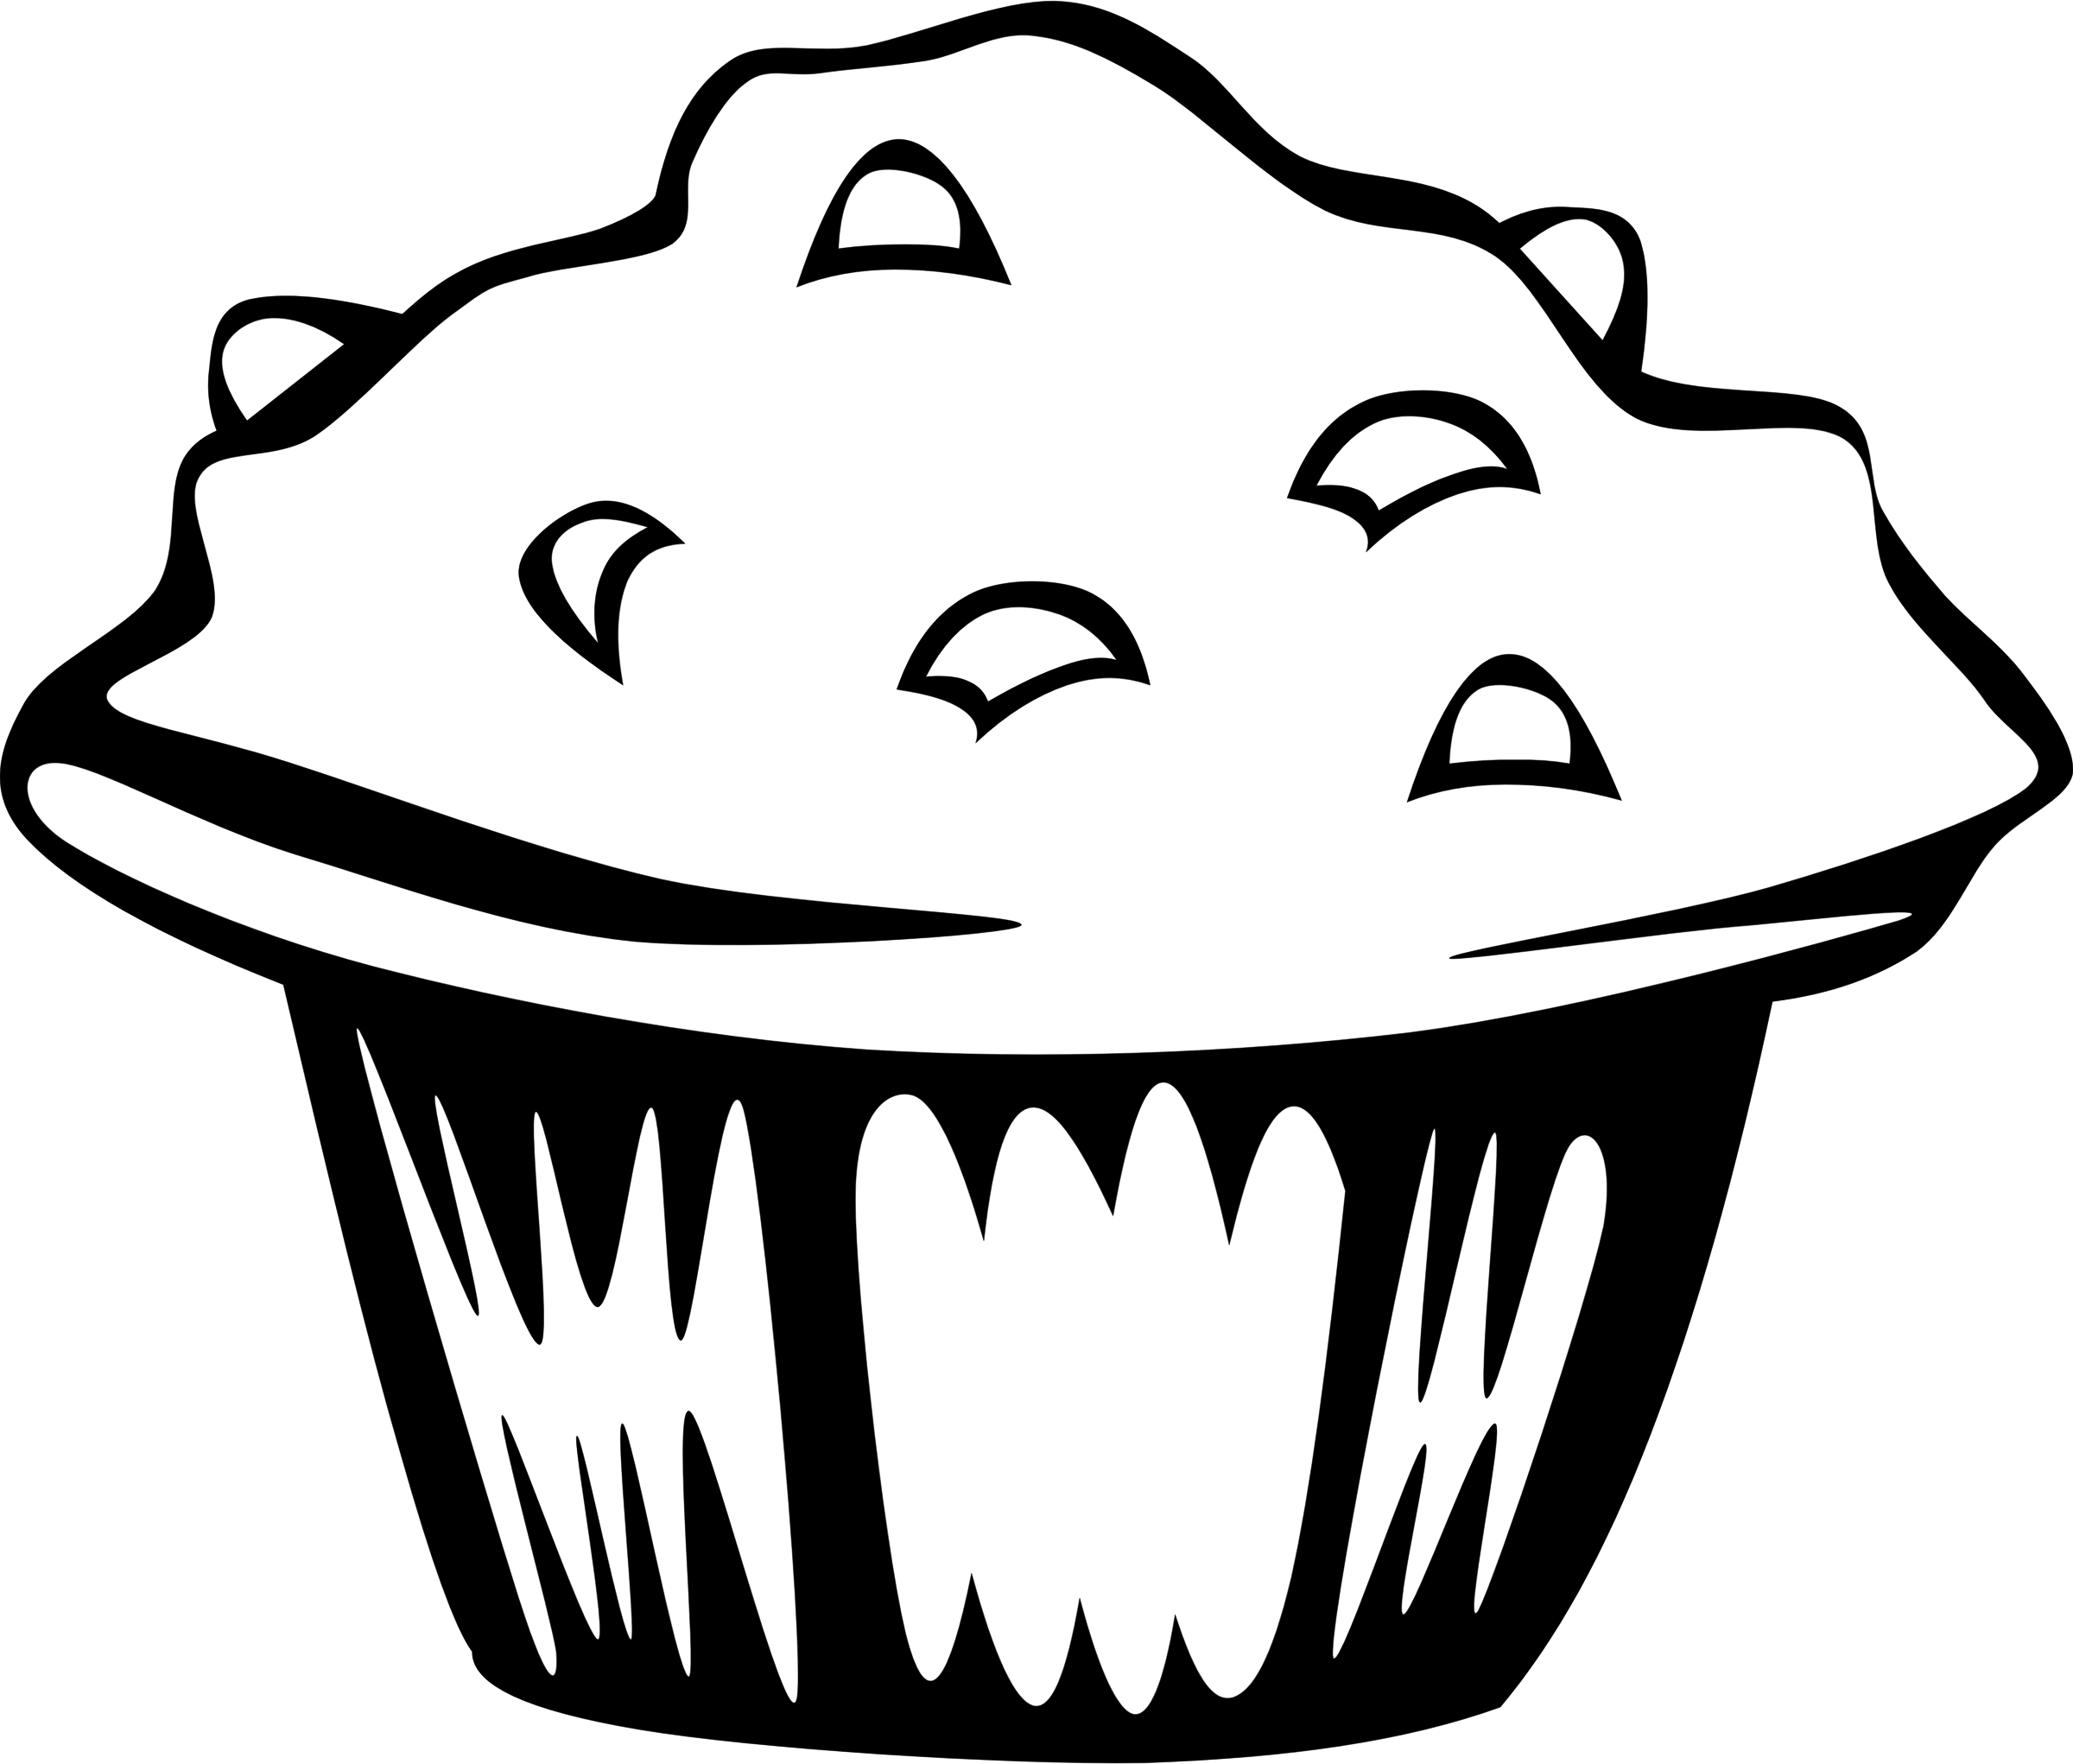 Muffin clip art black and white clipart images gallery for.